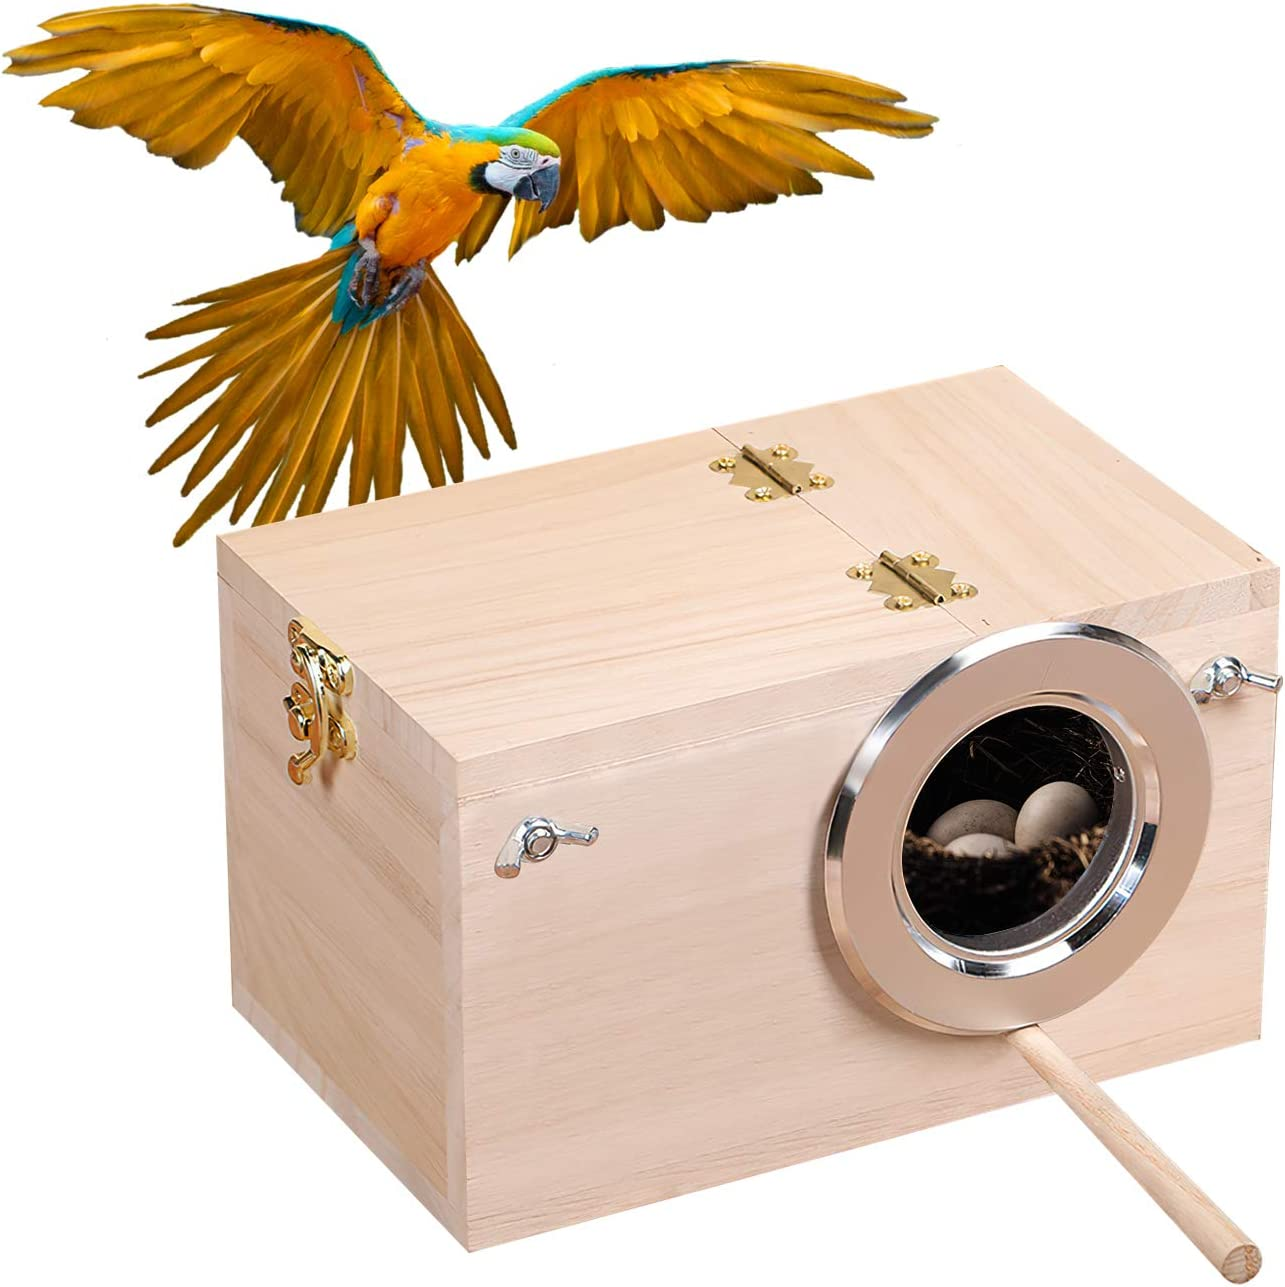 CROWNY Parakeet Nest Box Bird House Wood Breeding Box for Lovebirds, Parrotlets Mating Box